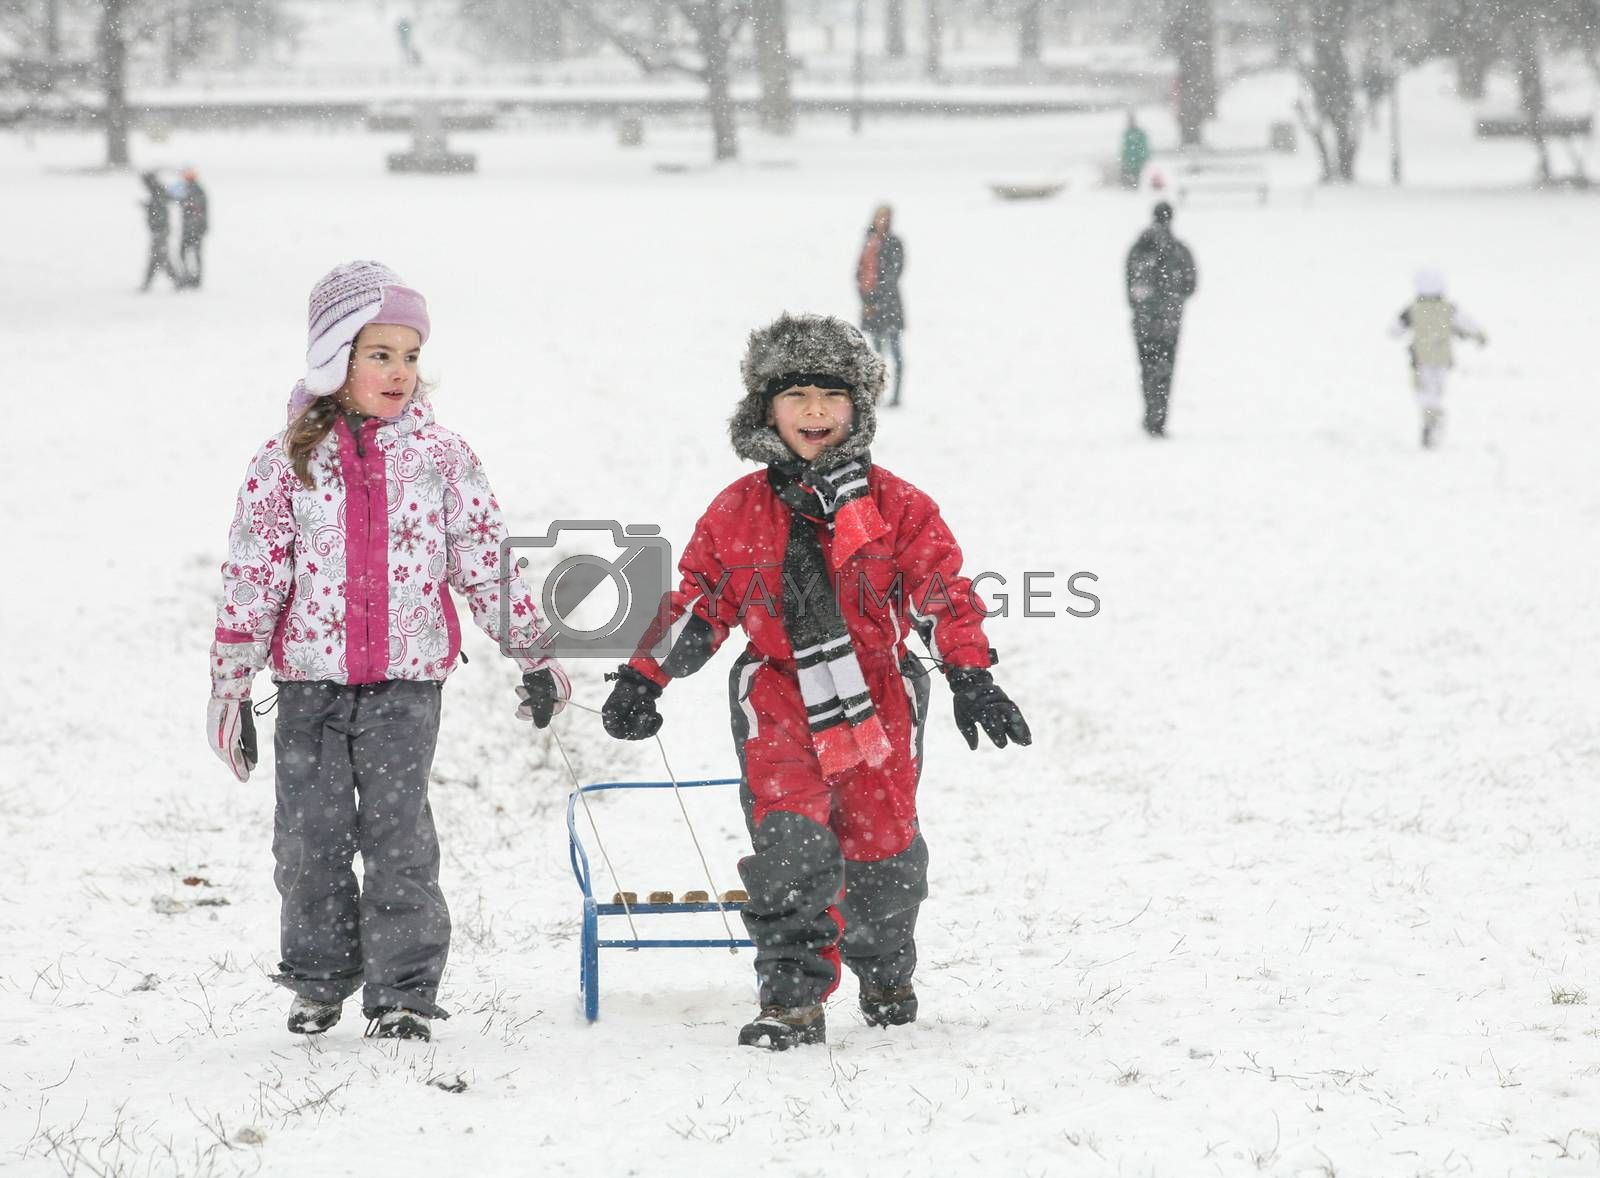 Two happy kids are pulling a sled in the snow during a cold winter day.